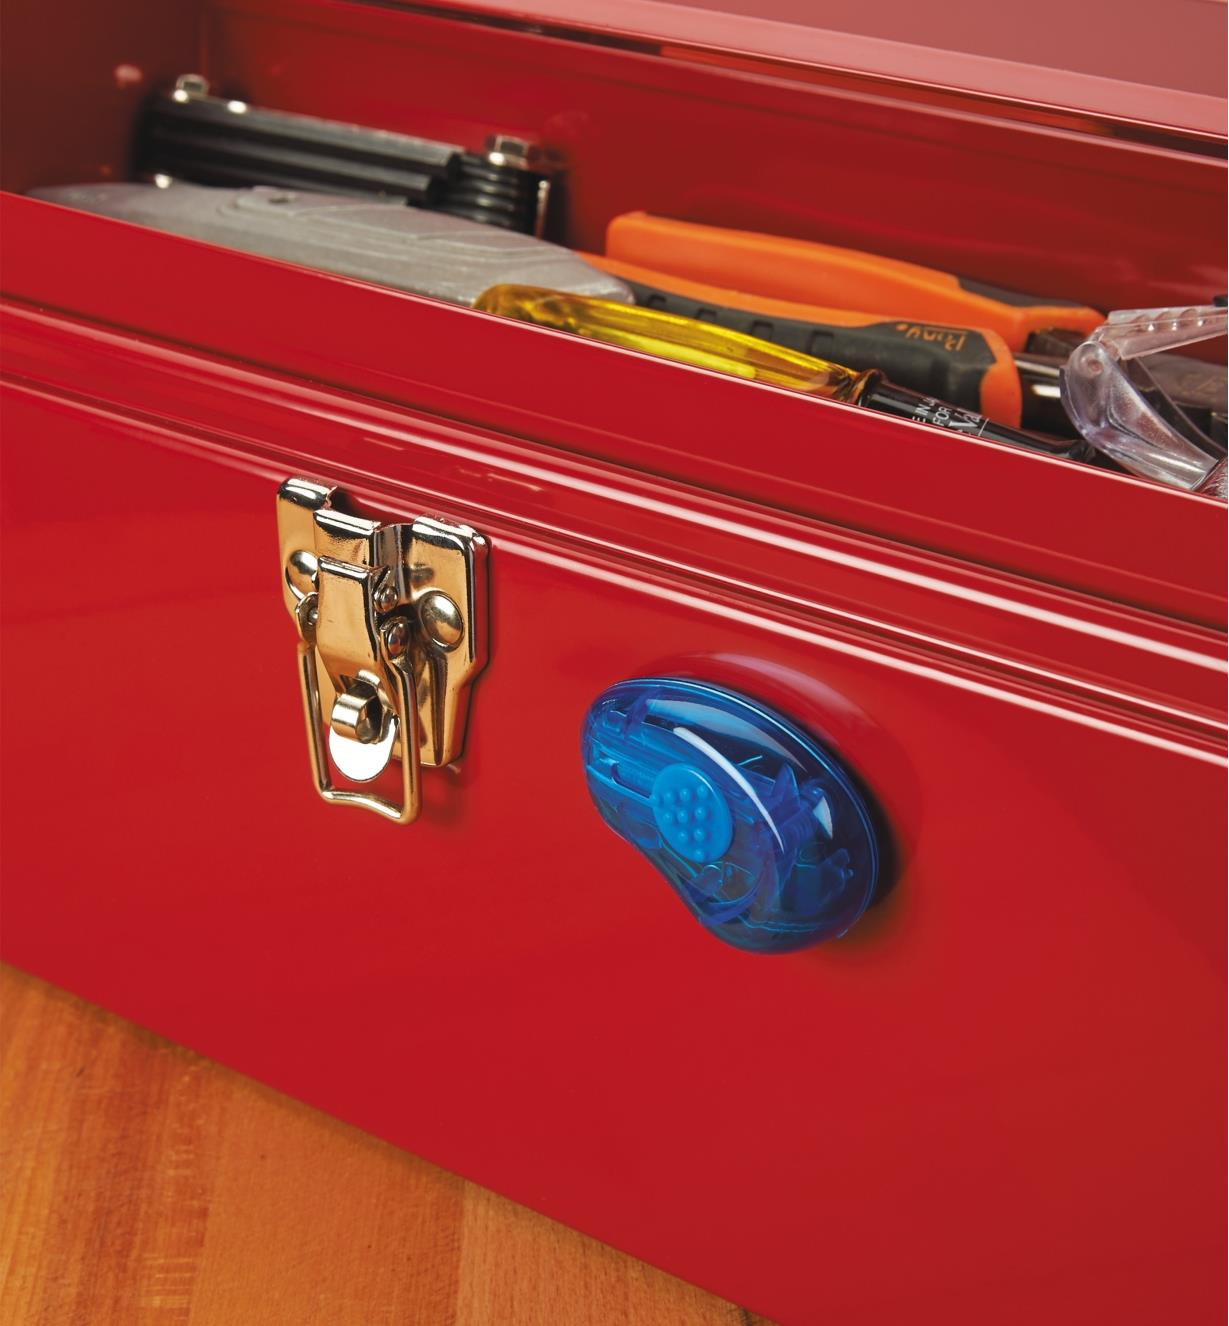 A Mini Utility Knife attached to a toolbox by its integral magnet